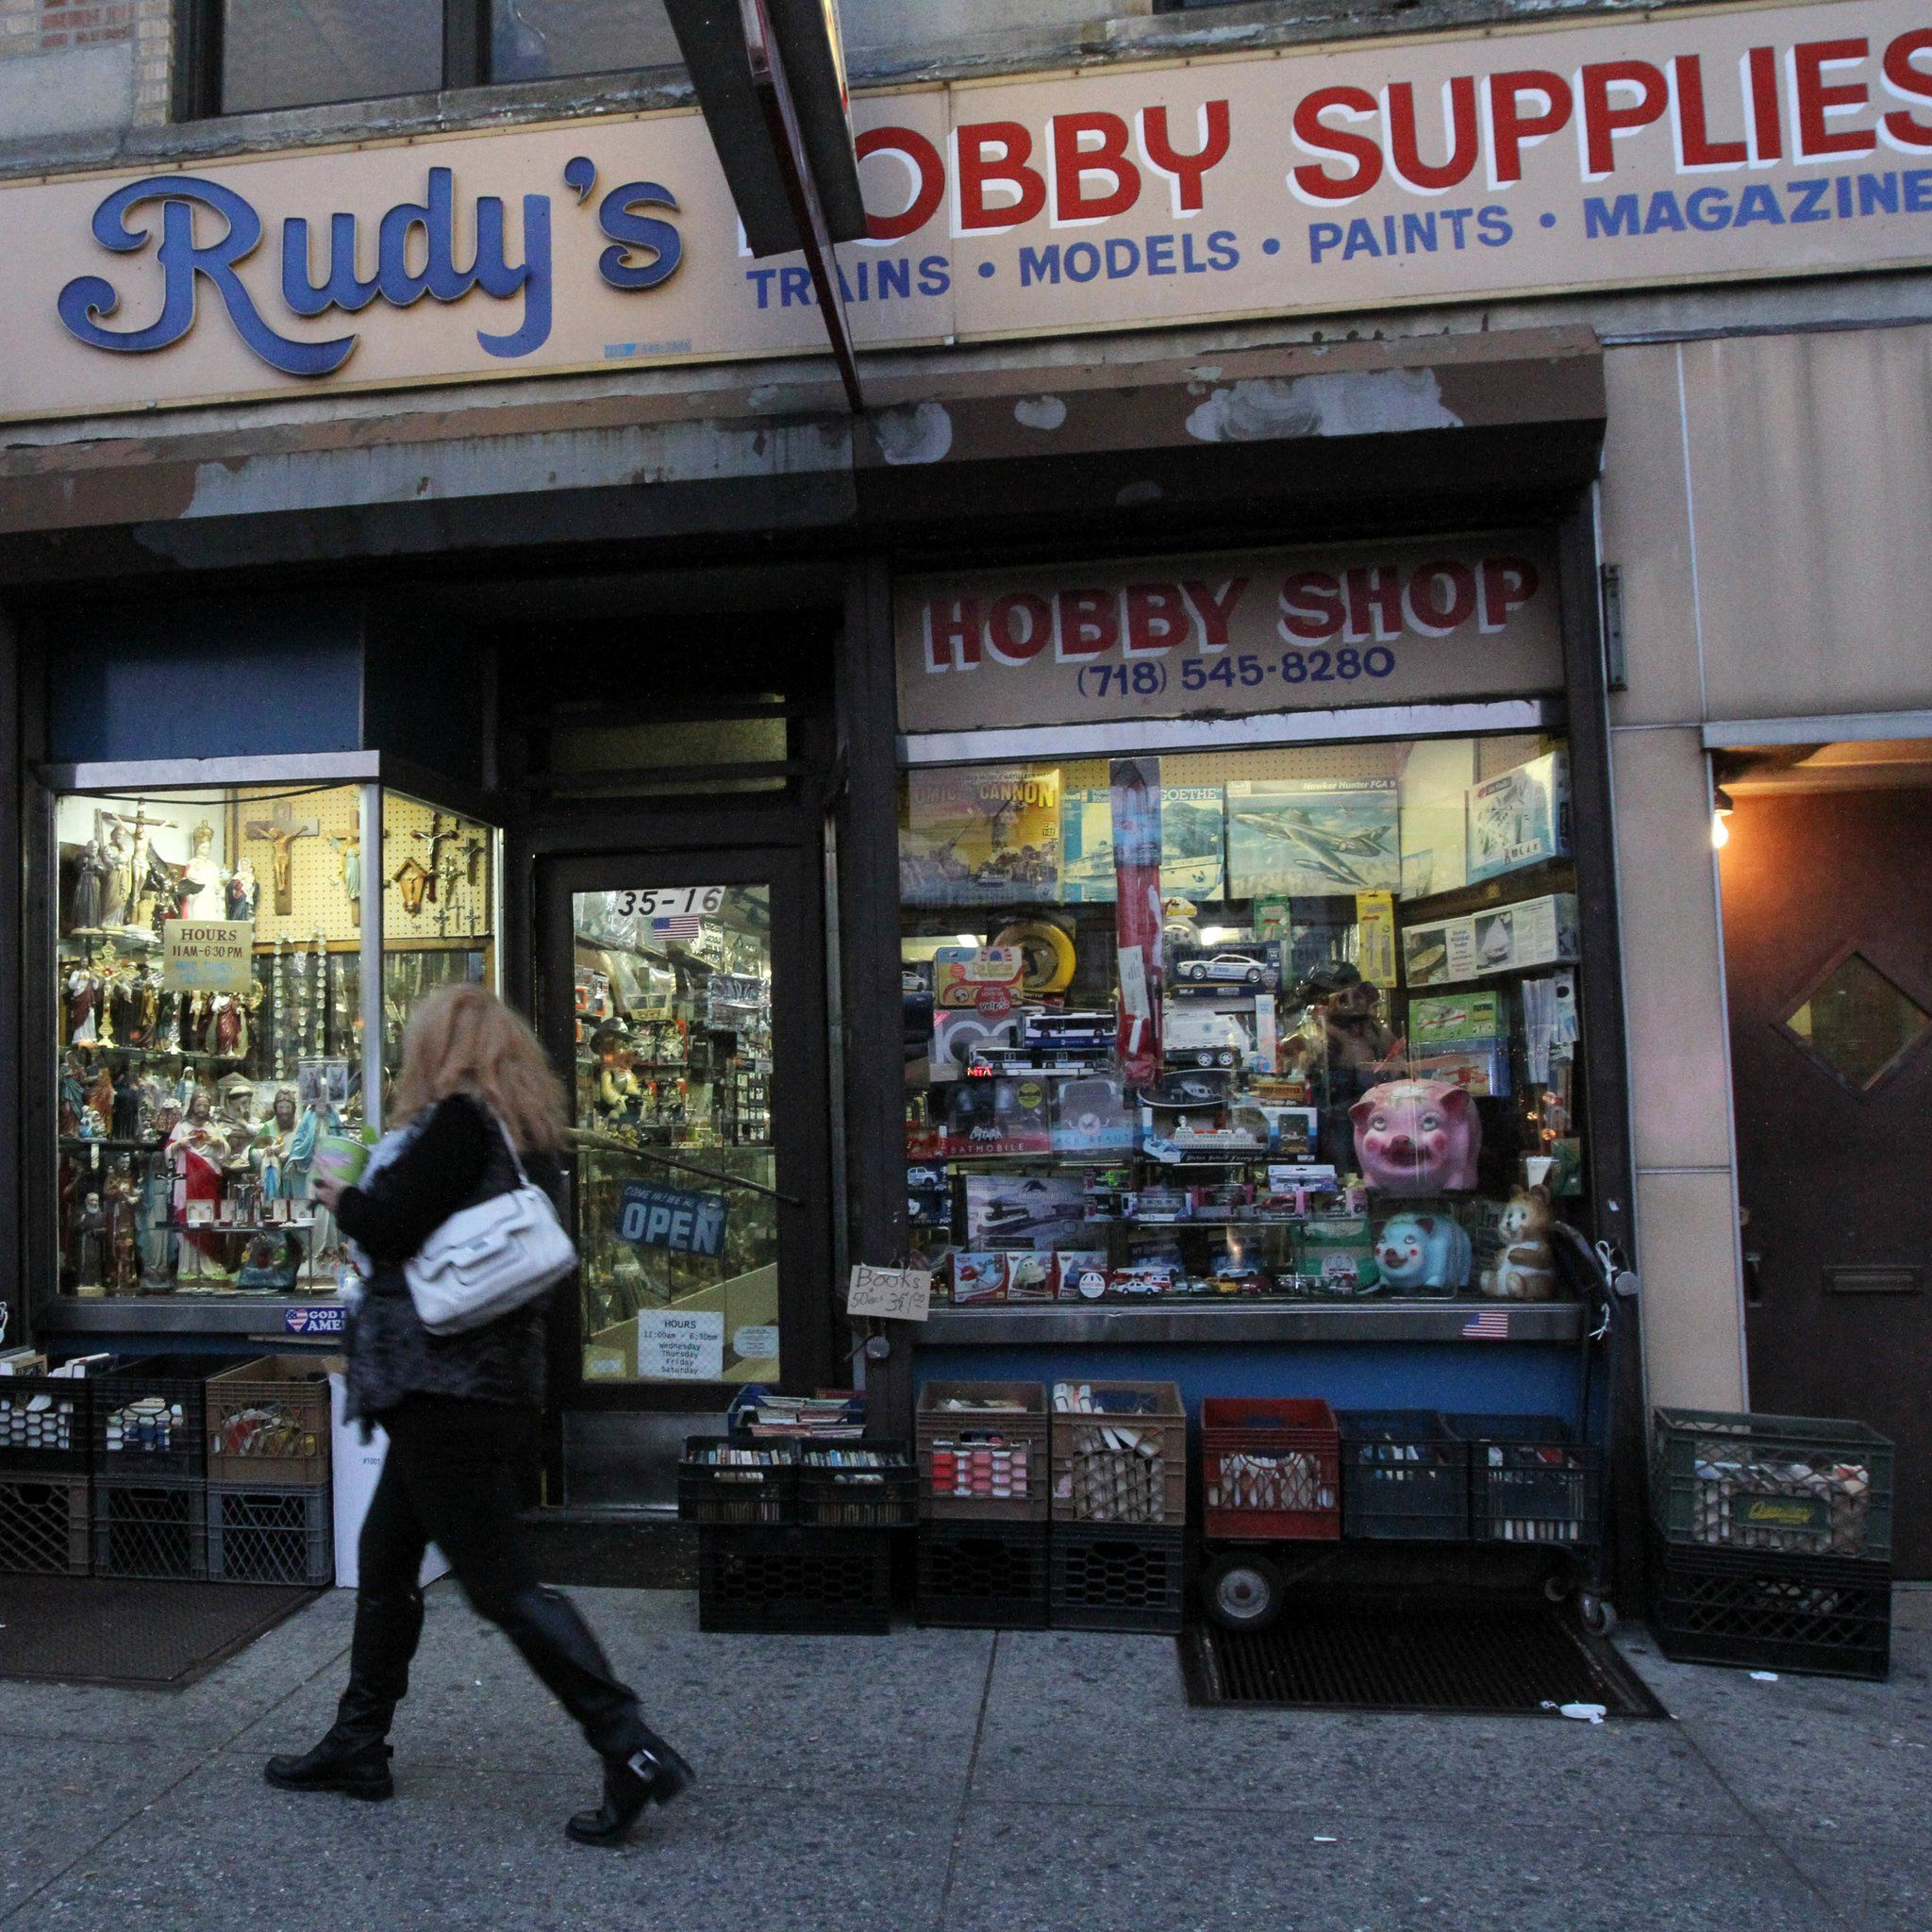 Rudy's Hobby & Art in Astoria, Queens, sells an extensive